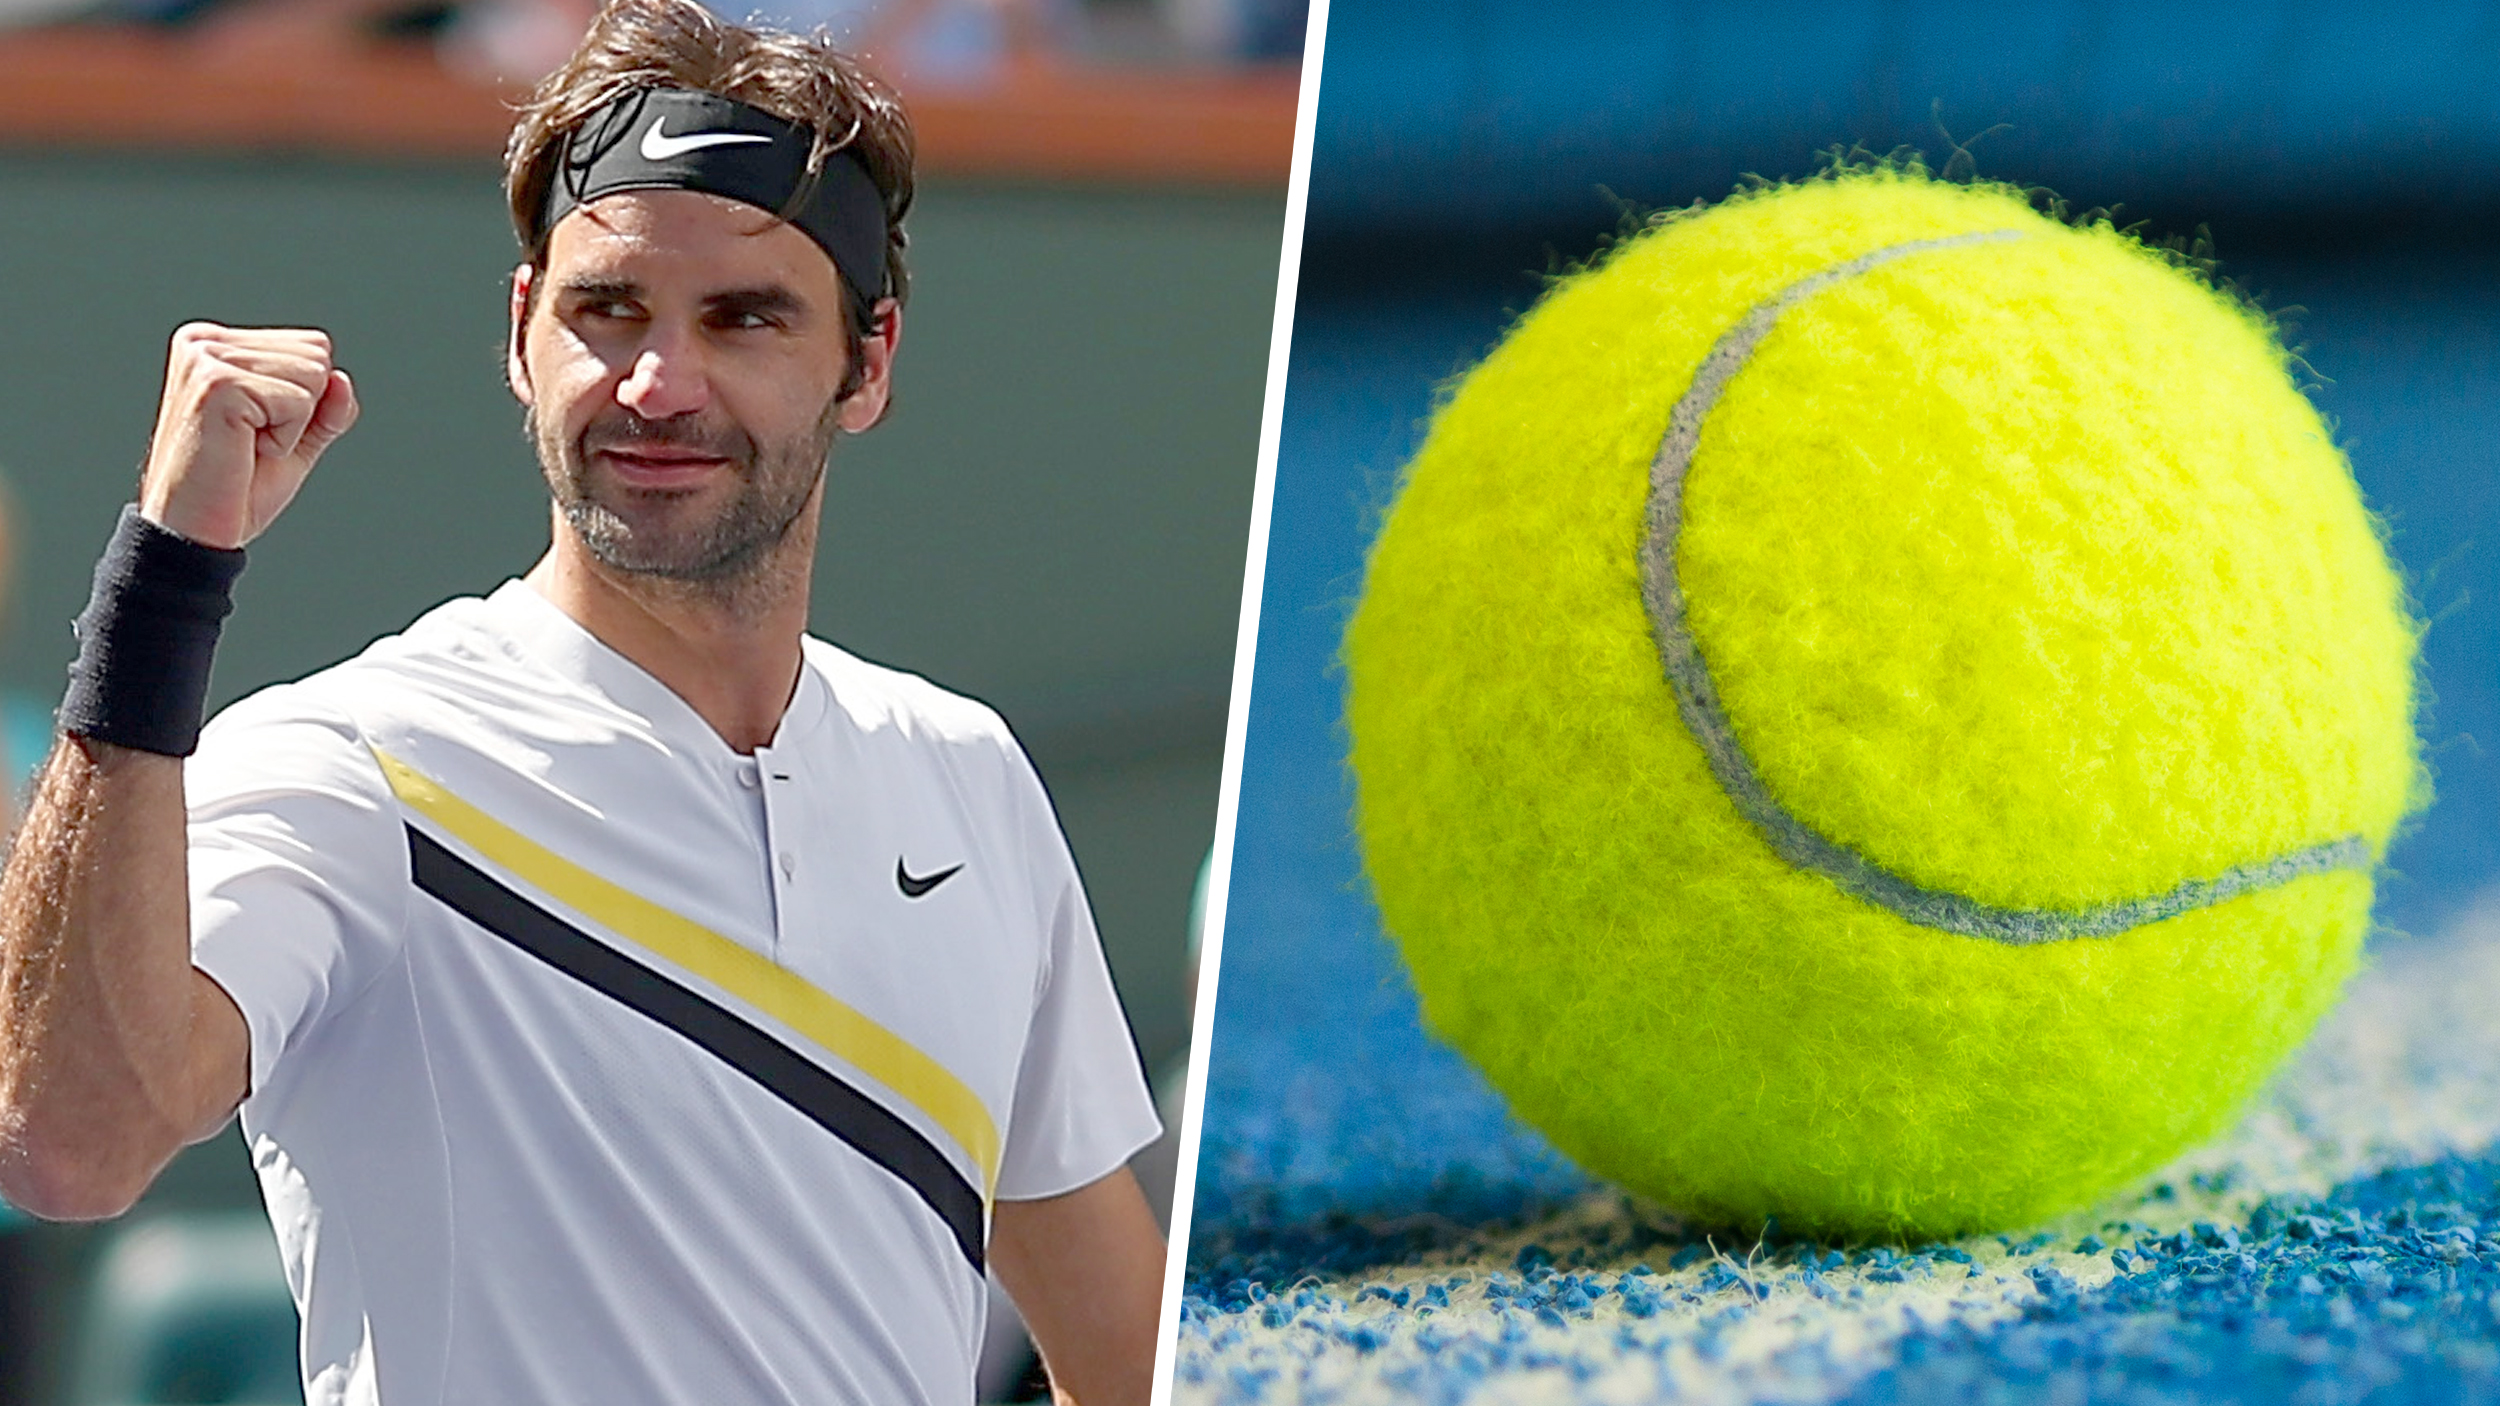 Are Tennis Balls Yellow Or Green Roger Federer Enters The Debate